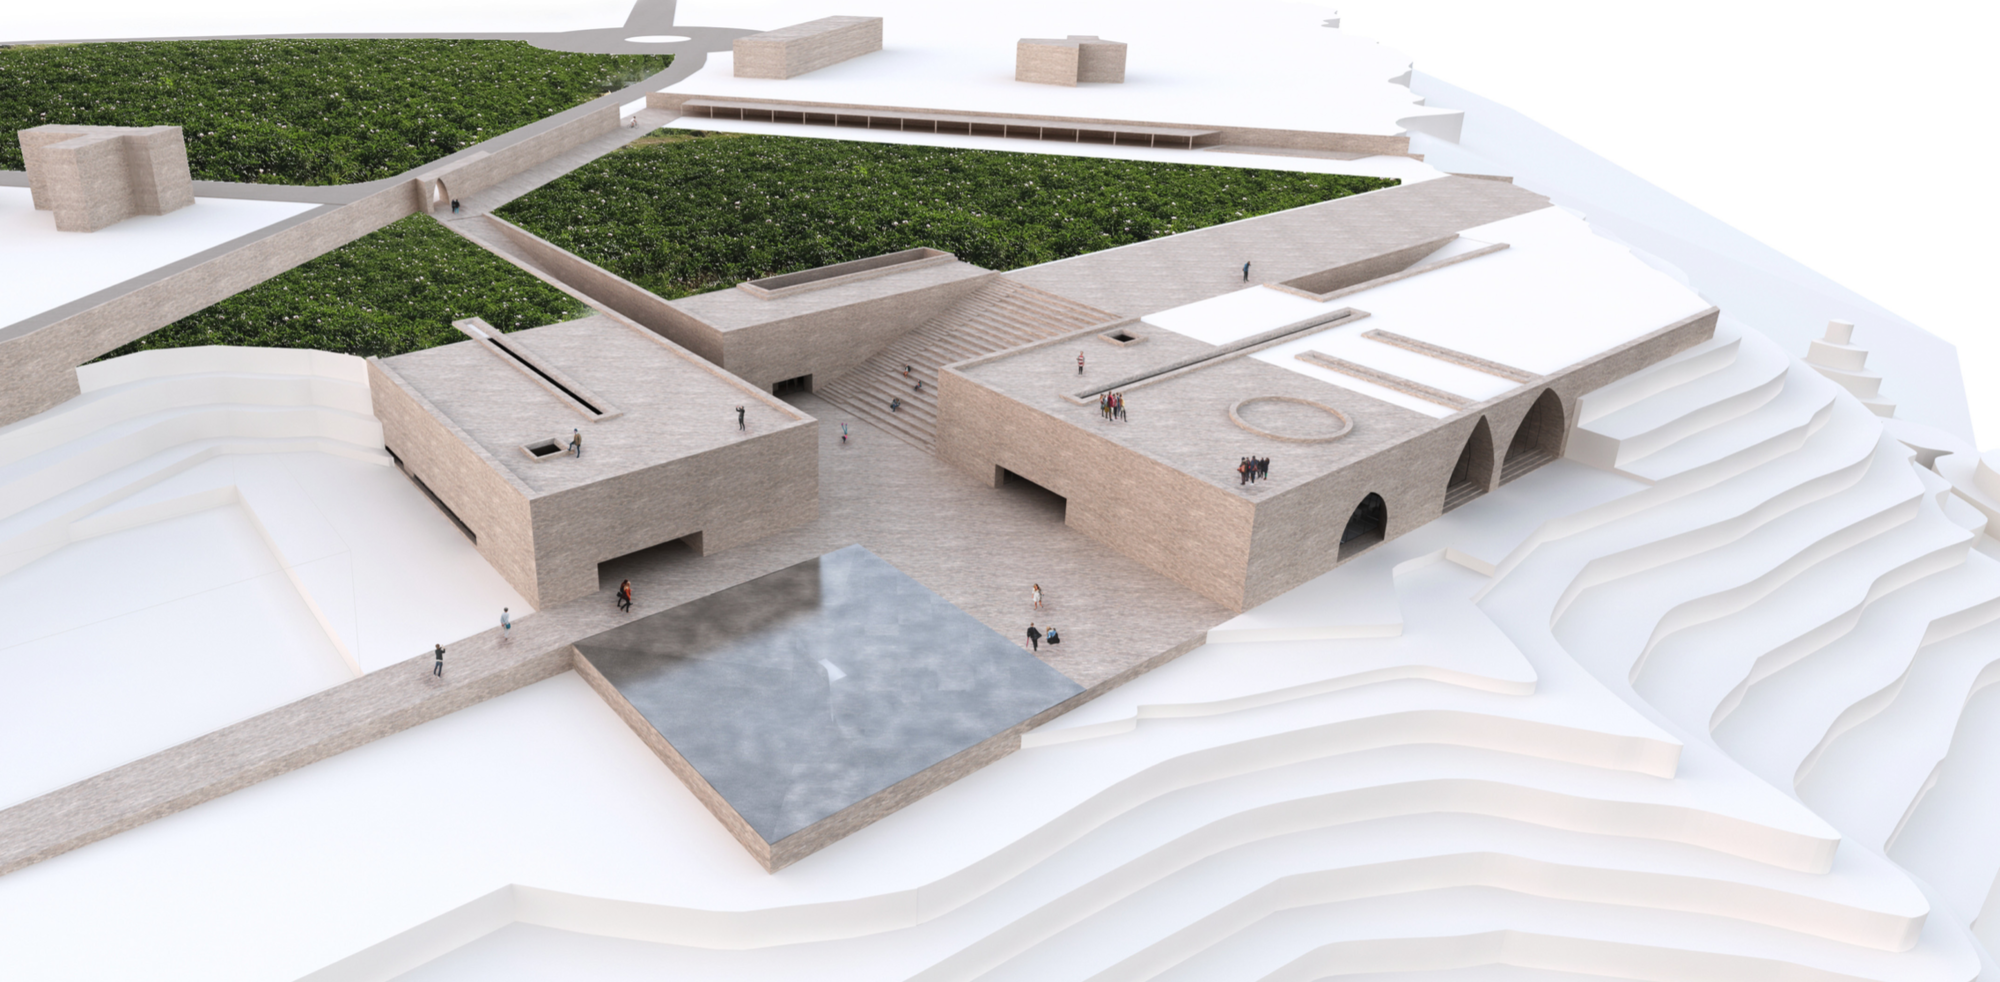 Winning Entry: Site Overview. Image Courtesy of UNESCO